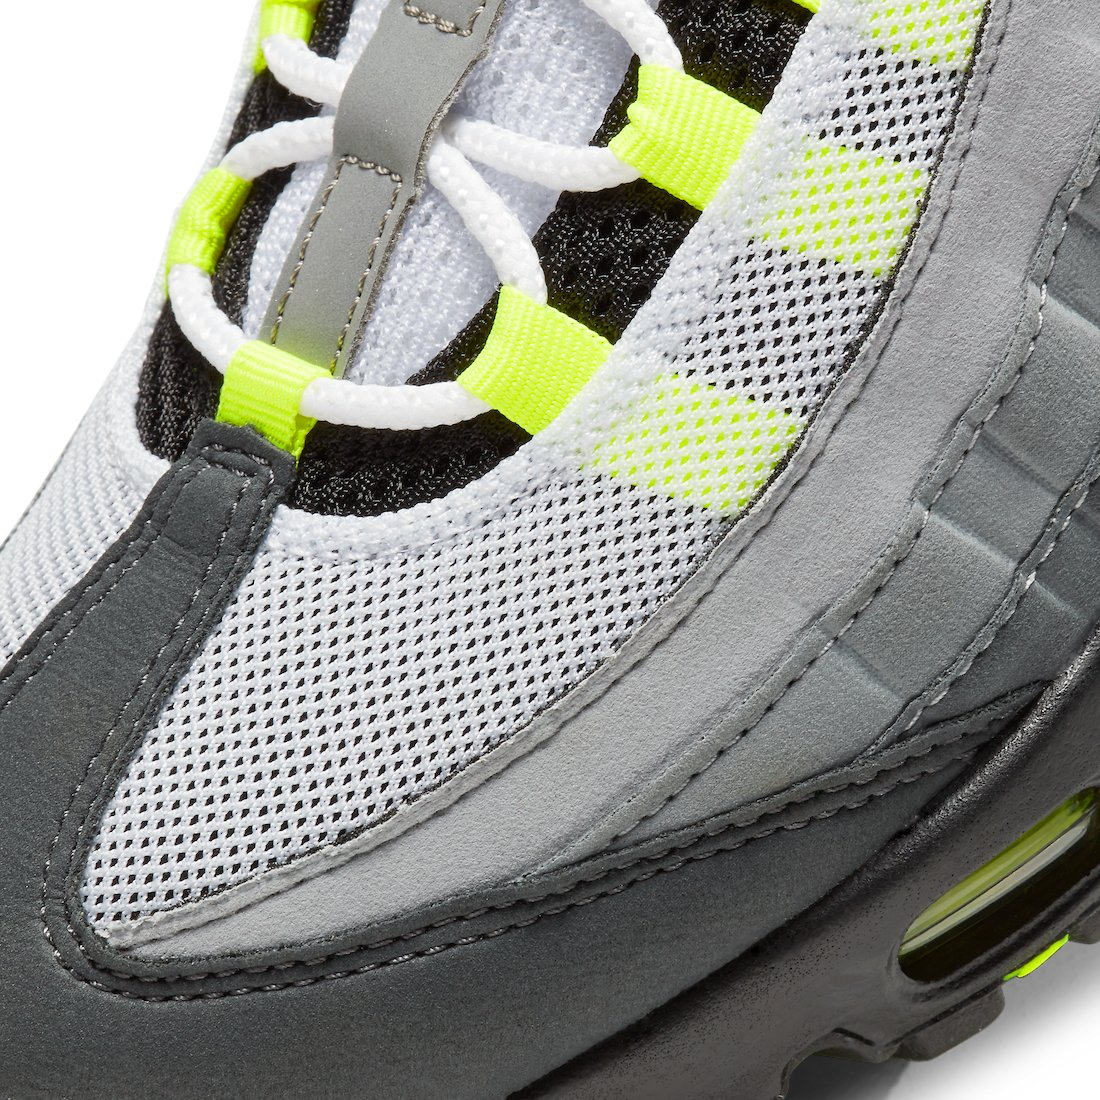 Nike Air Max 95 OG Neon CT1689-001 Release Details